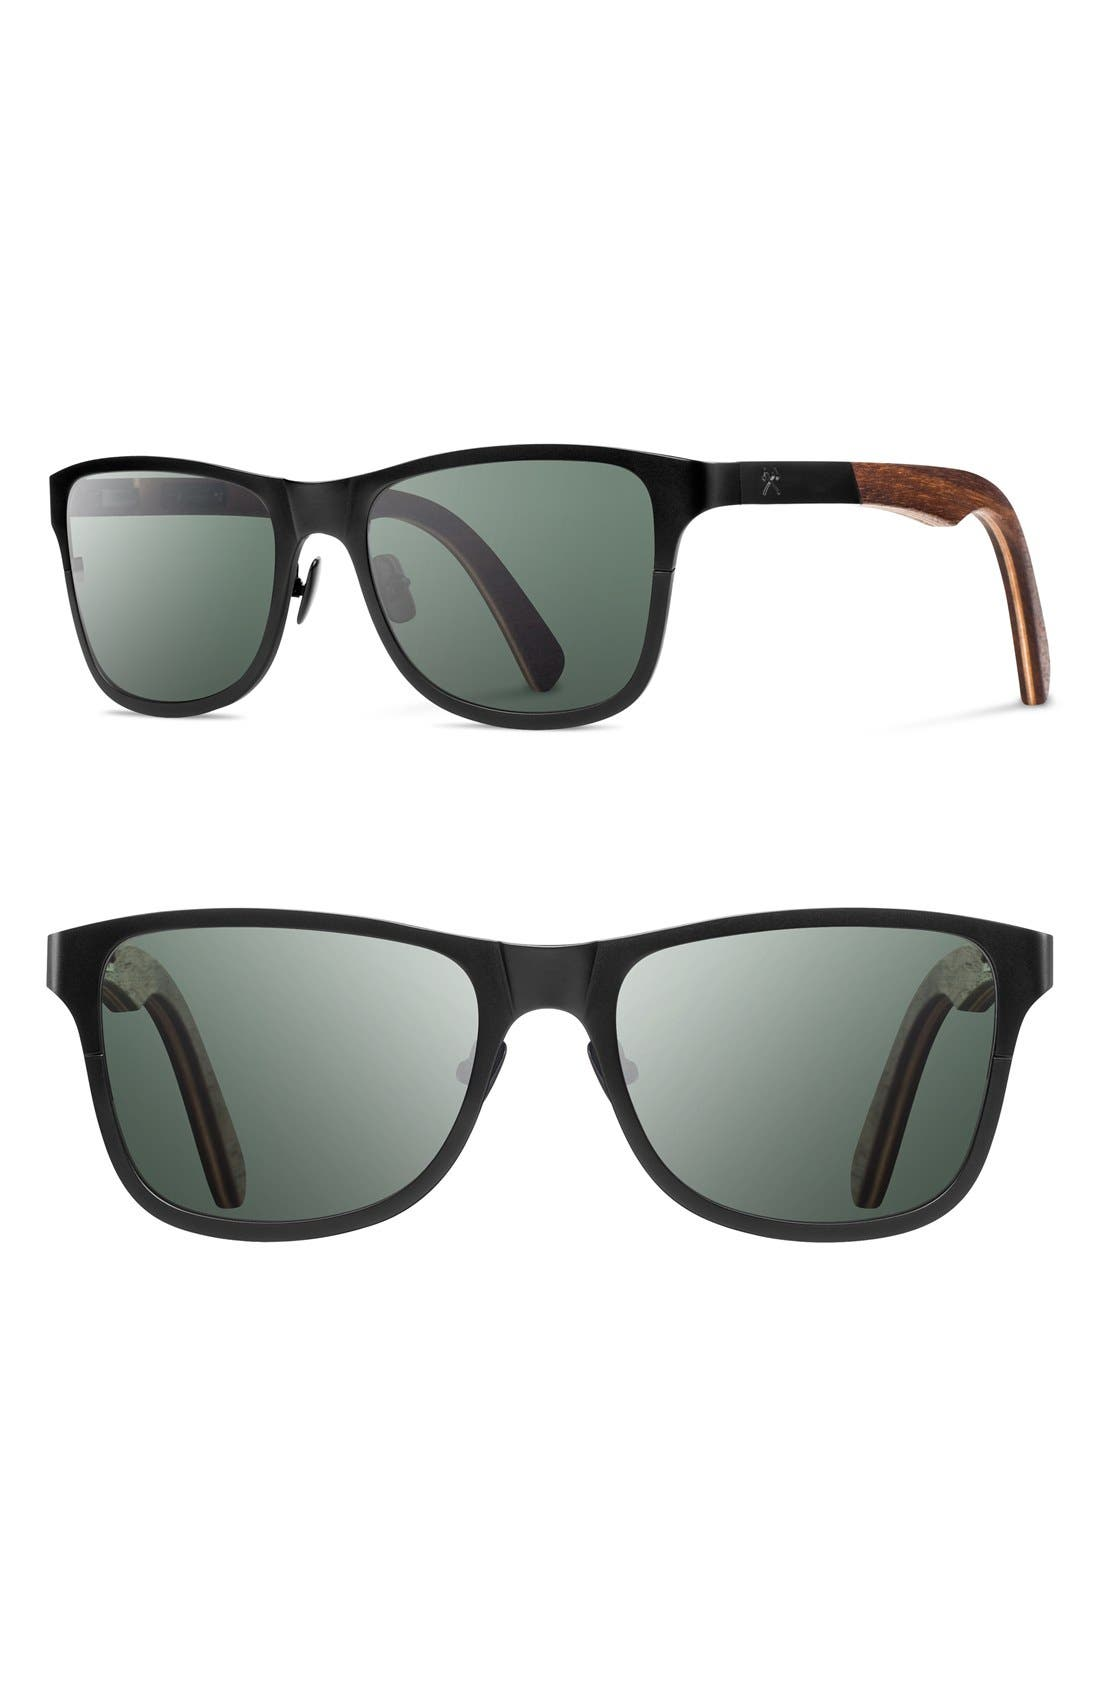 'Canby' 54mm Polarized Titanium & Wood Sunglasses,                             Main thumbnail 1, color,                             BLACK/ WALNUT